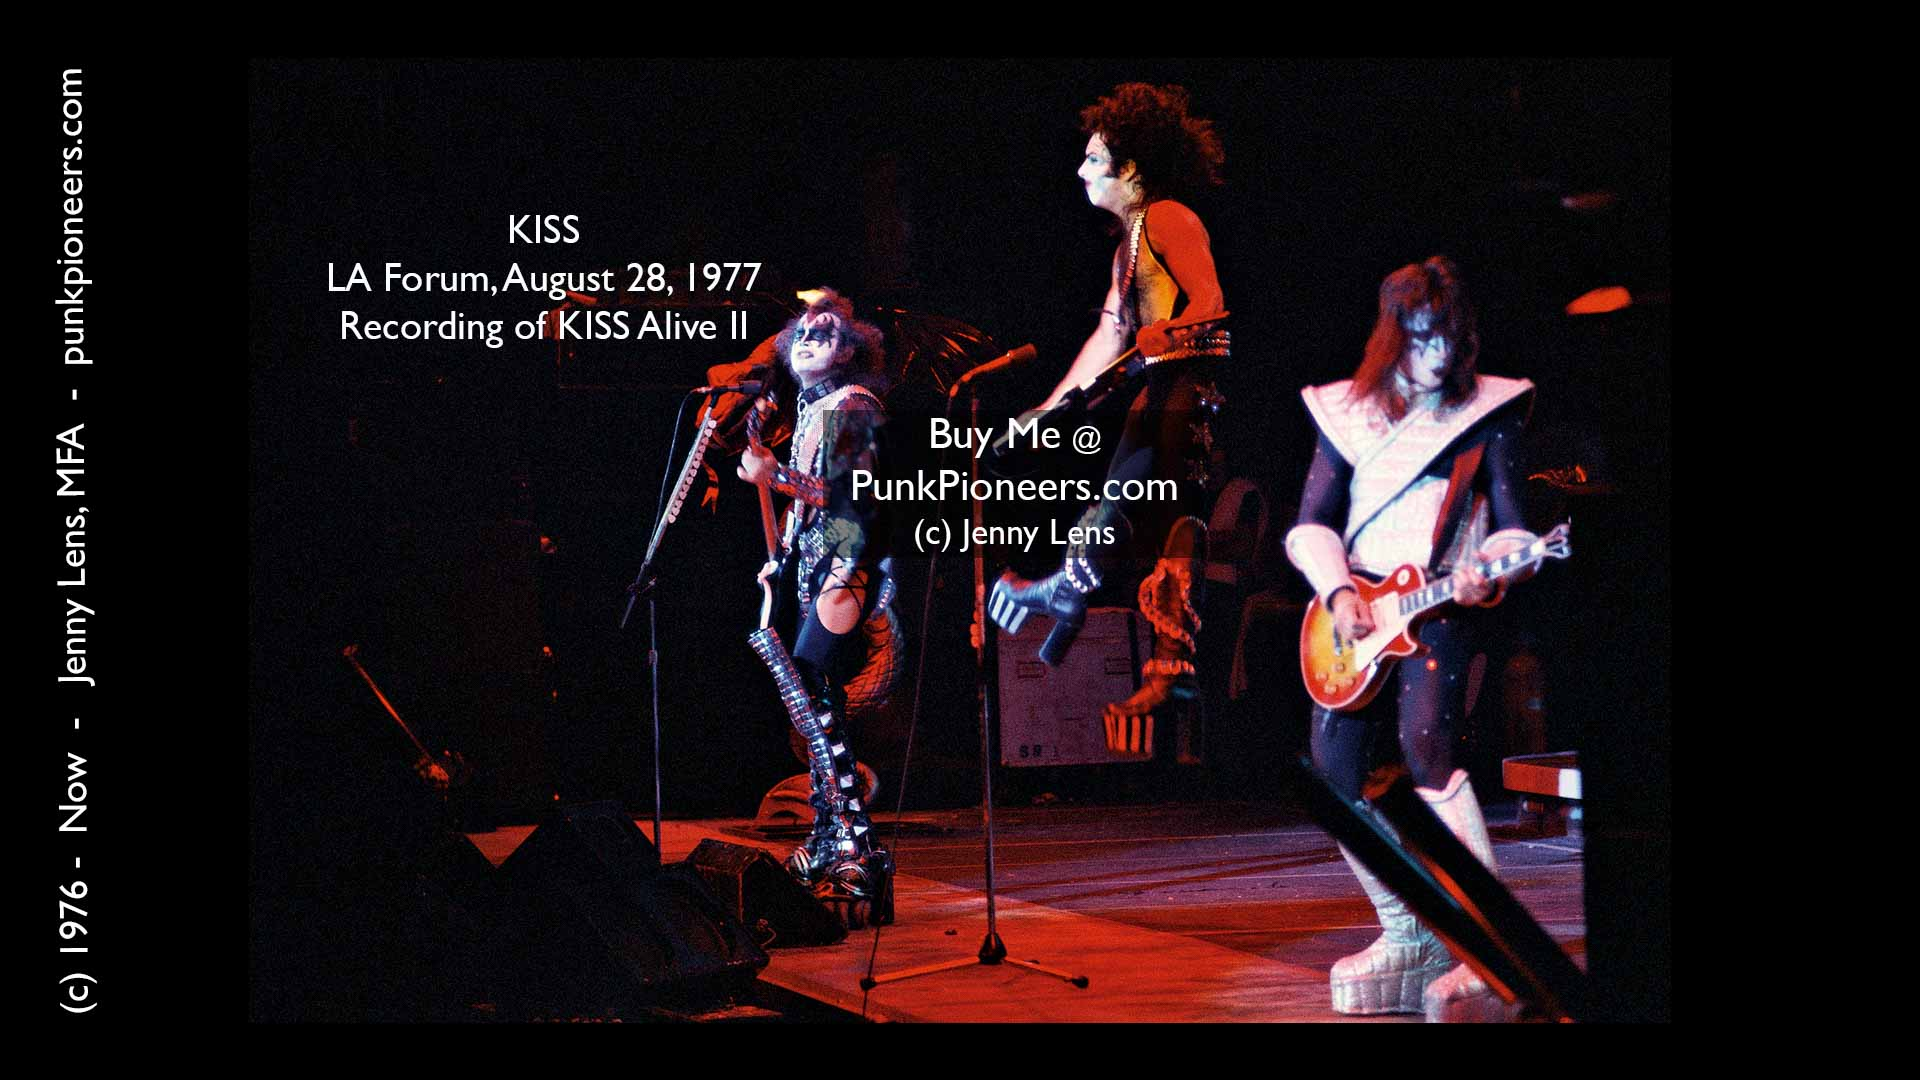 KISS, LA Forum, August 28, 1977,, Jenny Lens, PunkPioneers.com recording of KISS Live II